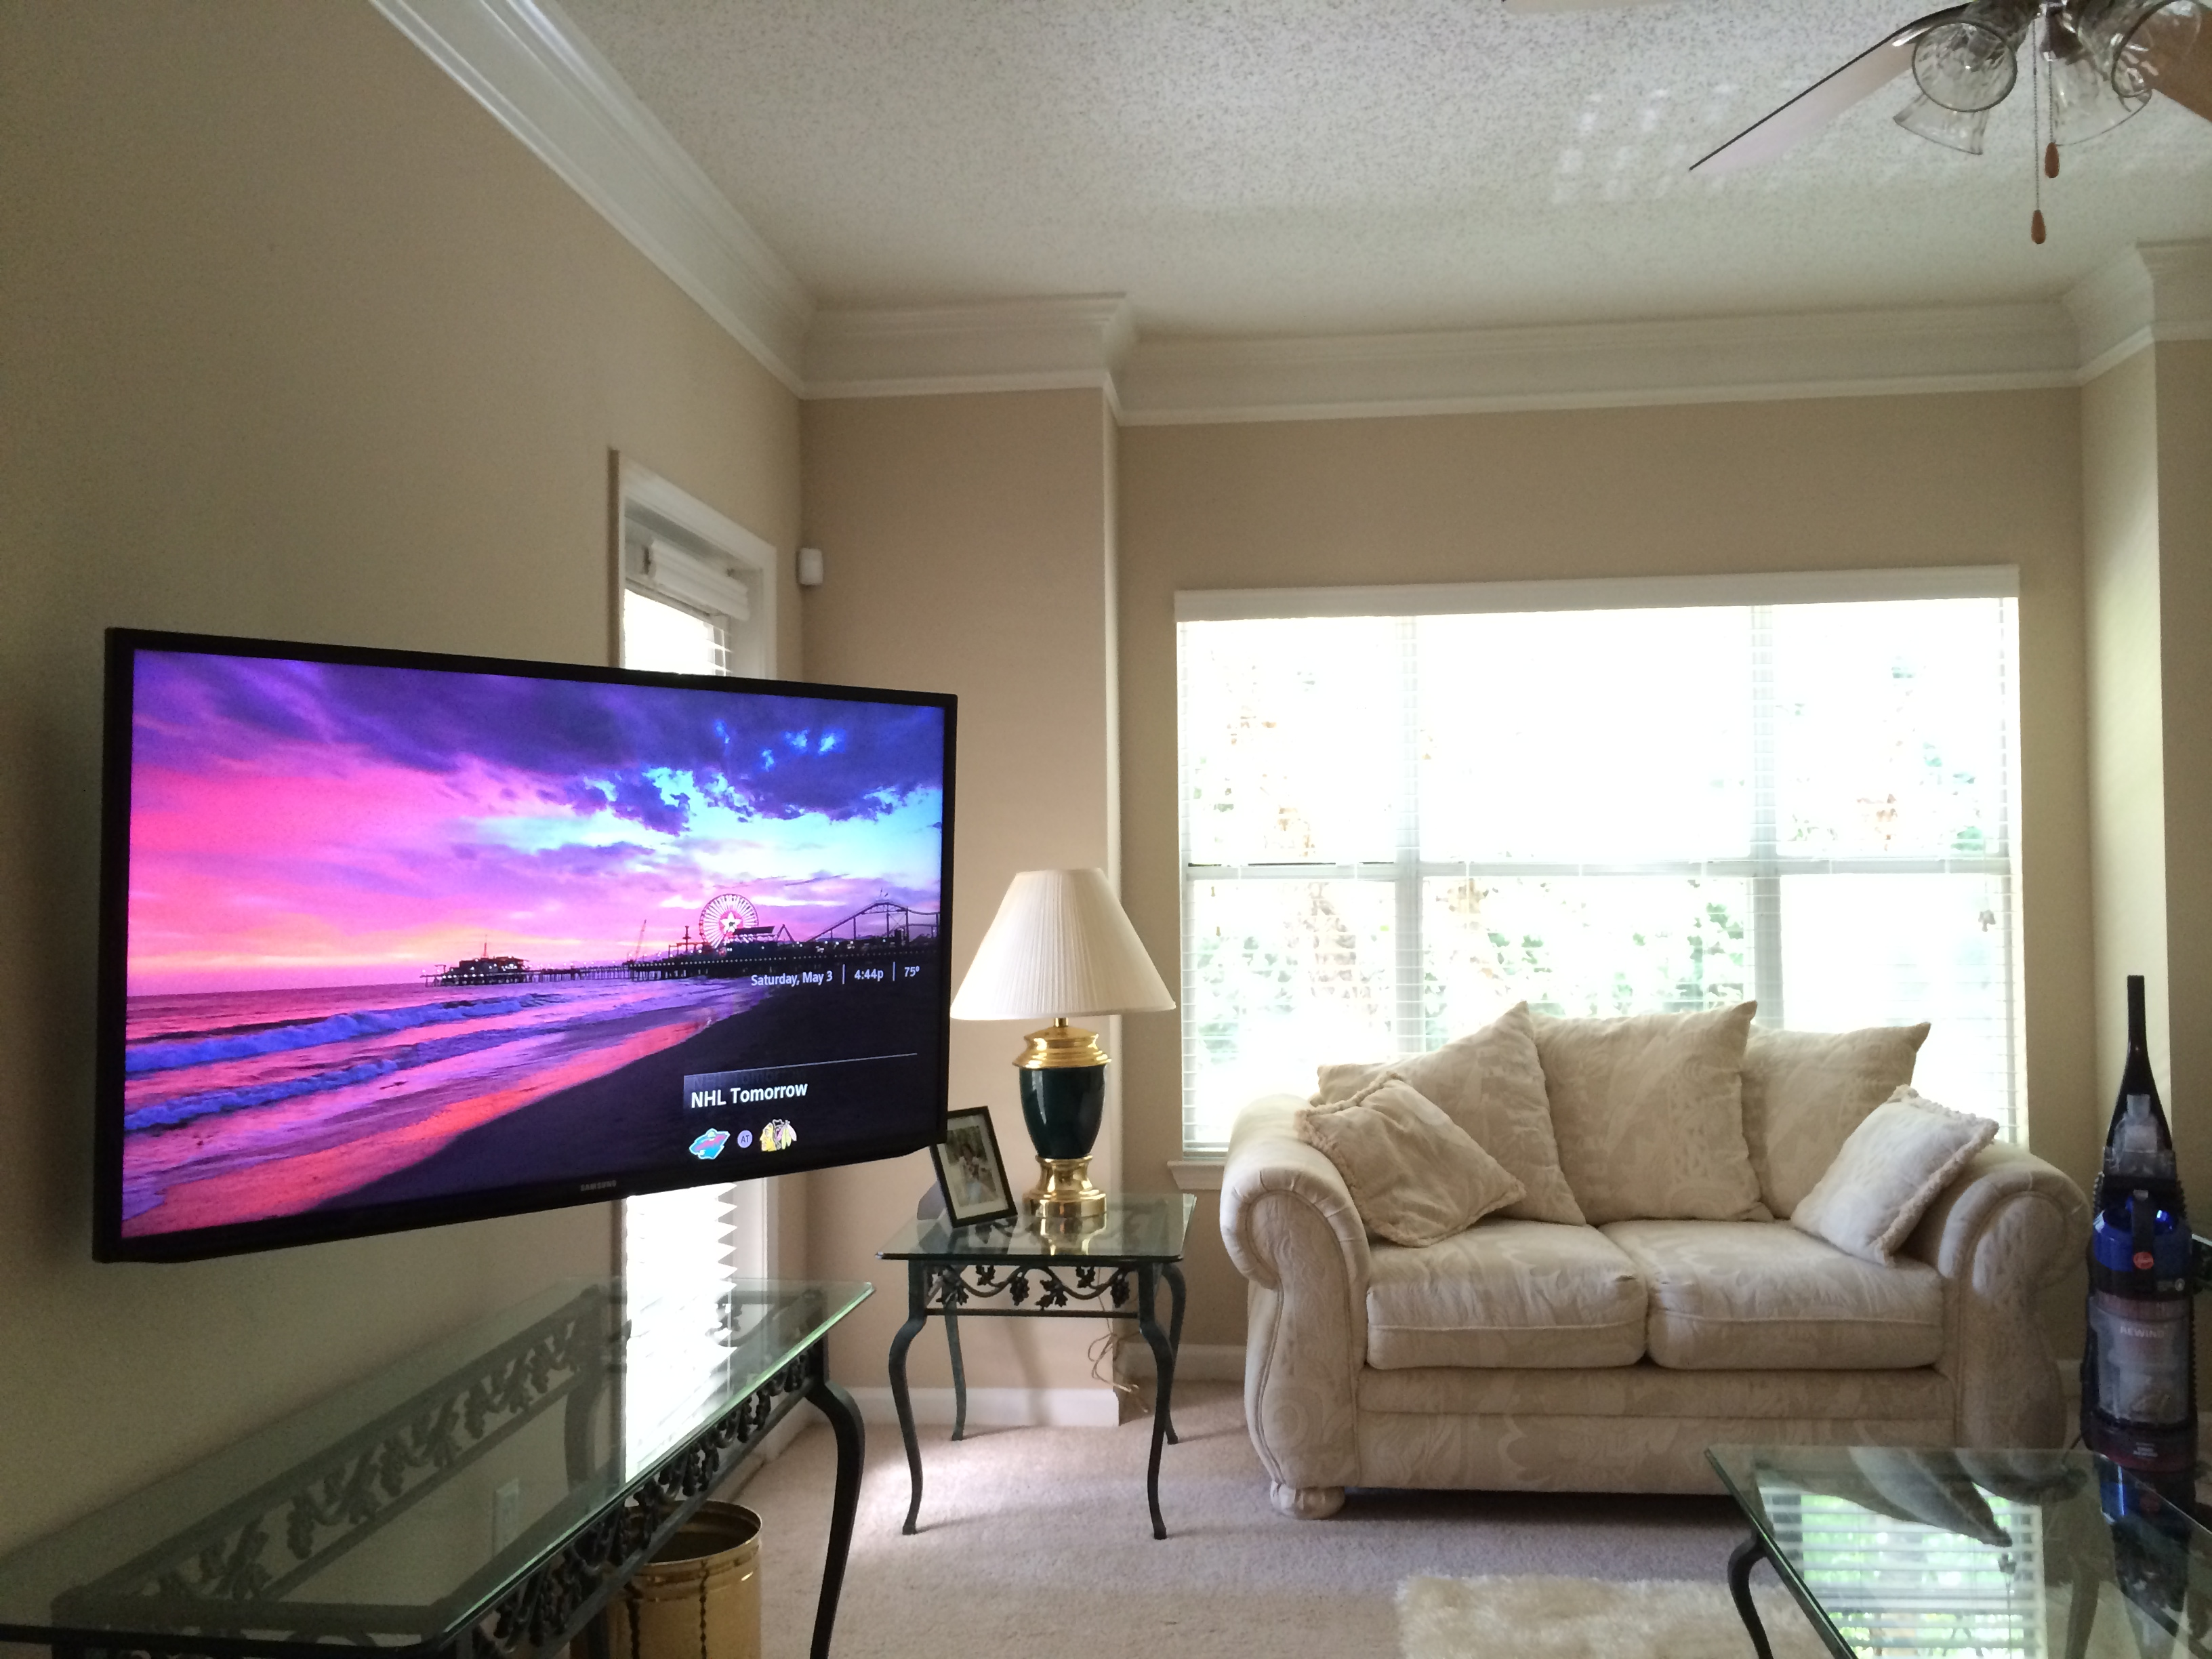 Tv Wall Ideal Installation Wiring Plates Can Provide Everything For Your As Well Mounts Brackets Dvd Shelves Hdmi Cables Optical Cords Etc